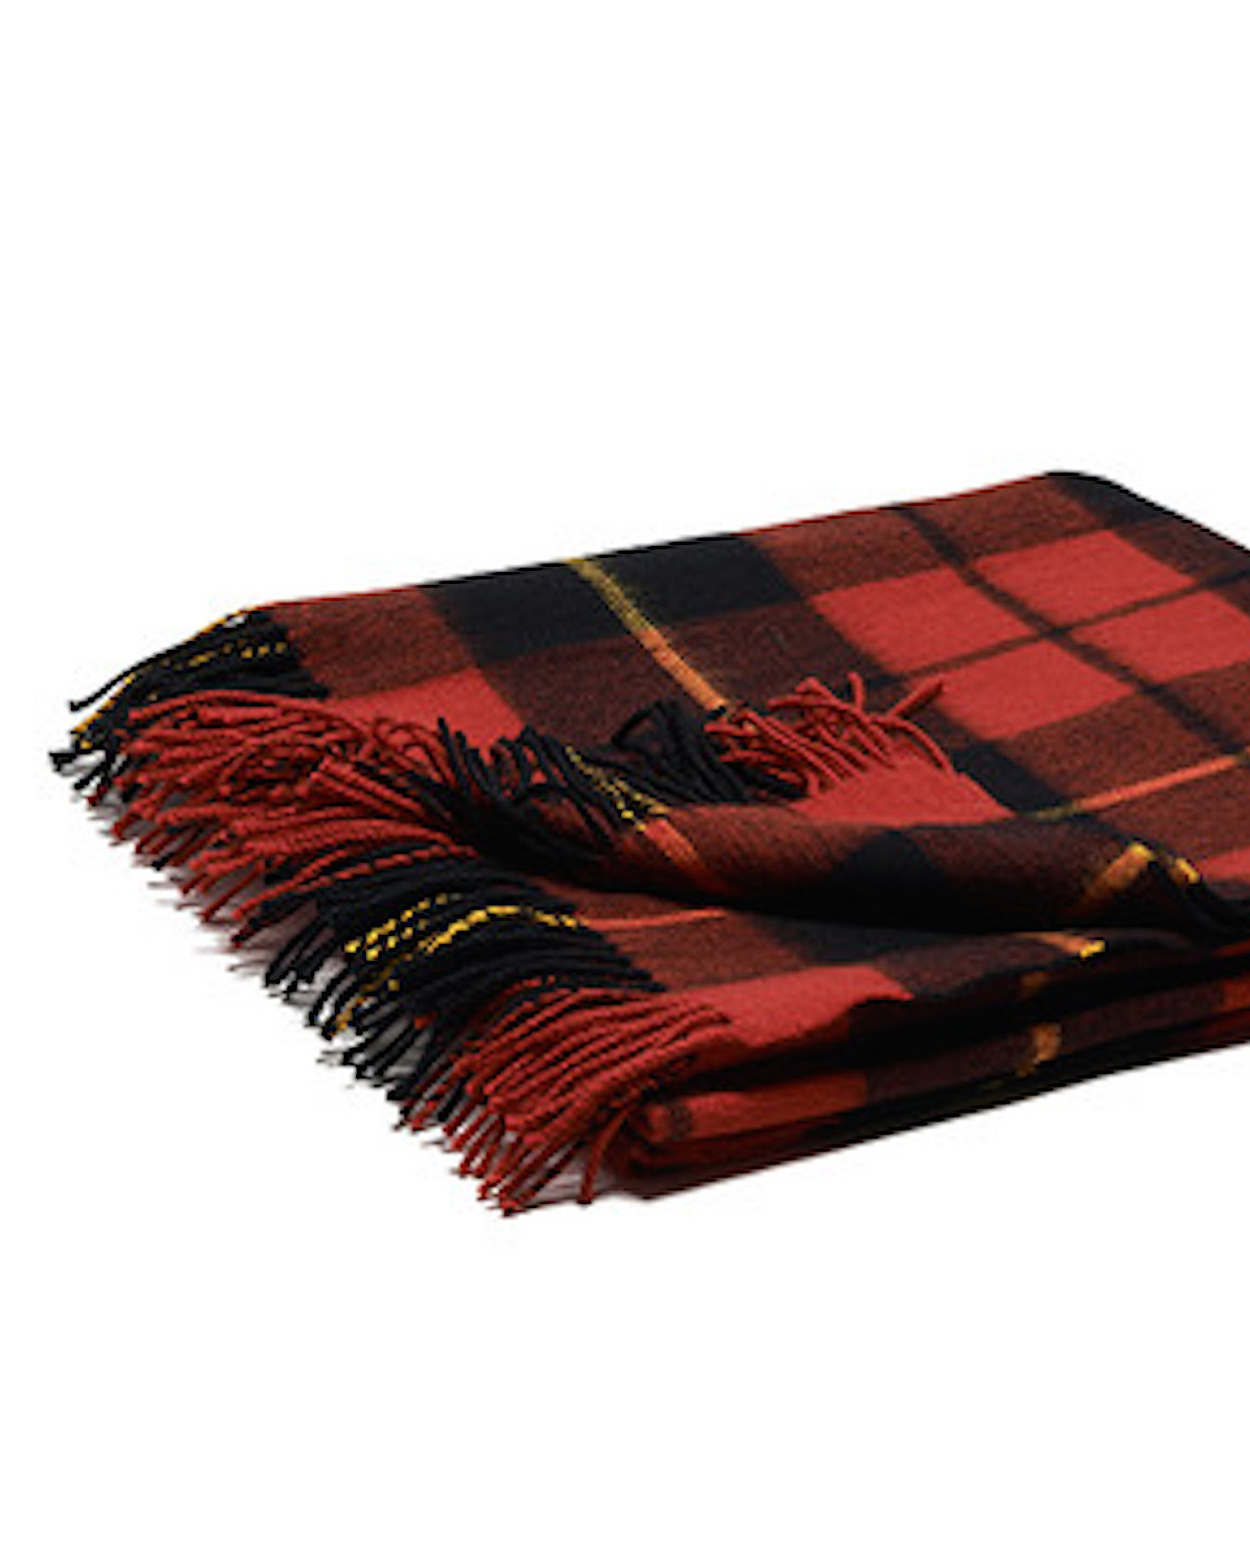 kaufman-red-plaid-blanket-1215.jpg